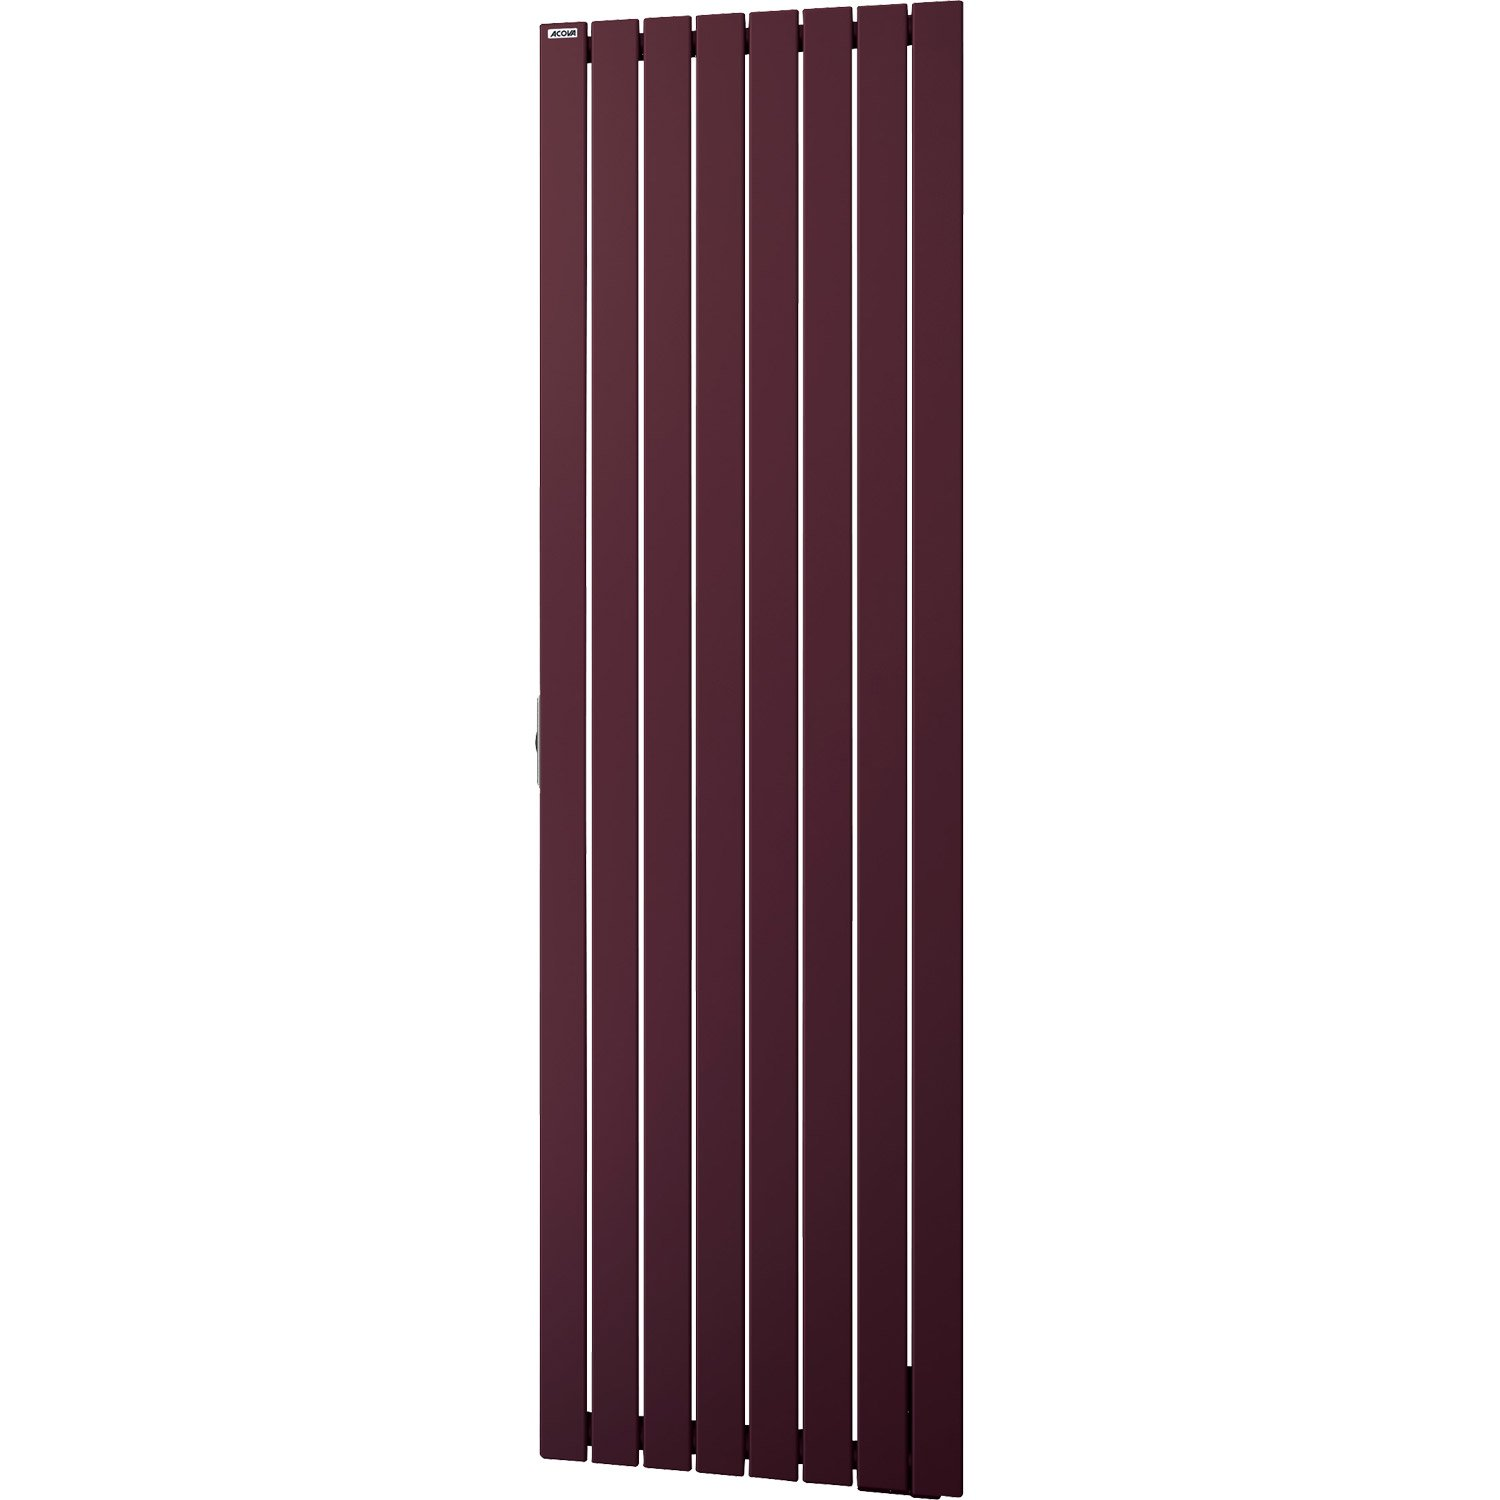 radiateur lectrique inertie fluide acova lina darck purple vertical 1500 w. Black Bedroom Furniture Sets. Home Design Ideas